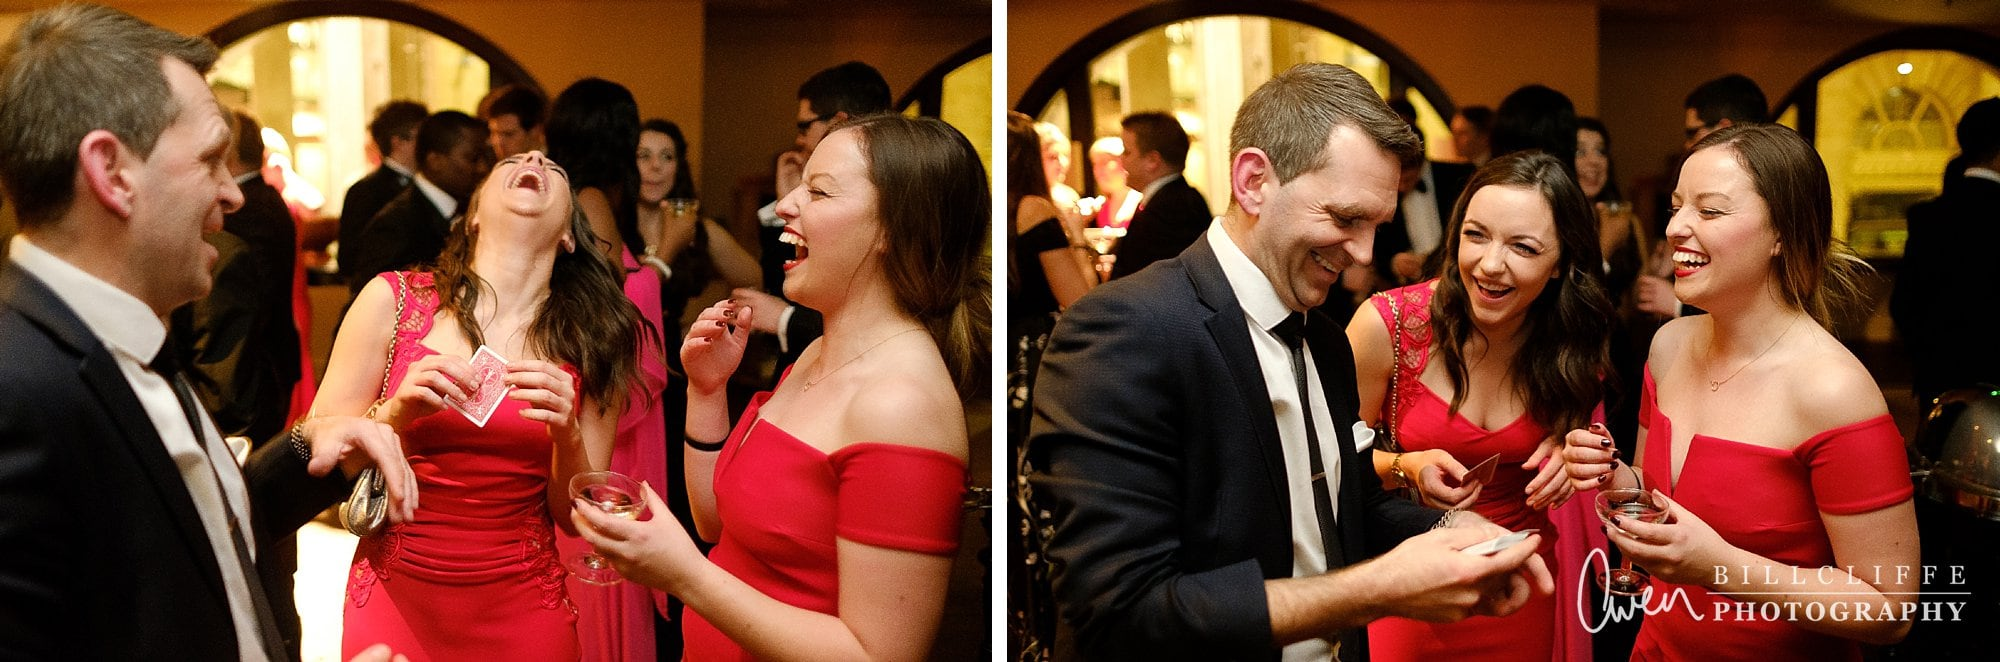 london wedding photographer magician lee smith 019 - Event Entertainer Spotlight: Lee Smith, Walkabout Magician